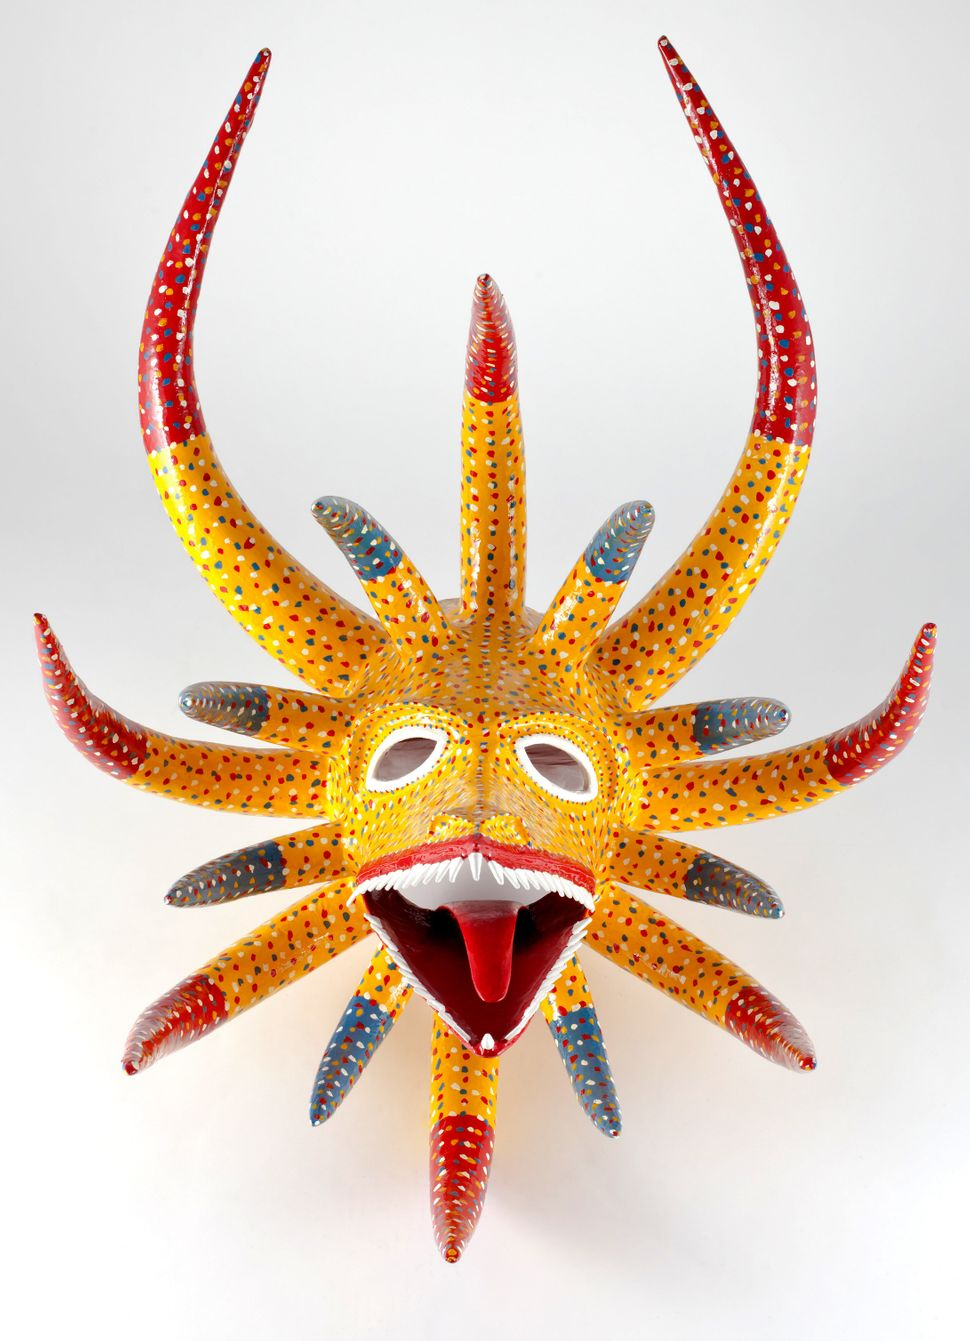 Miguel Caraballo García Mask, 2011 Molded, modeled and polychromed papier-mâché Santo Tomás, Ponce, Puerto Rico Image Courtes